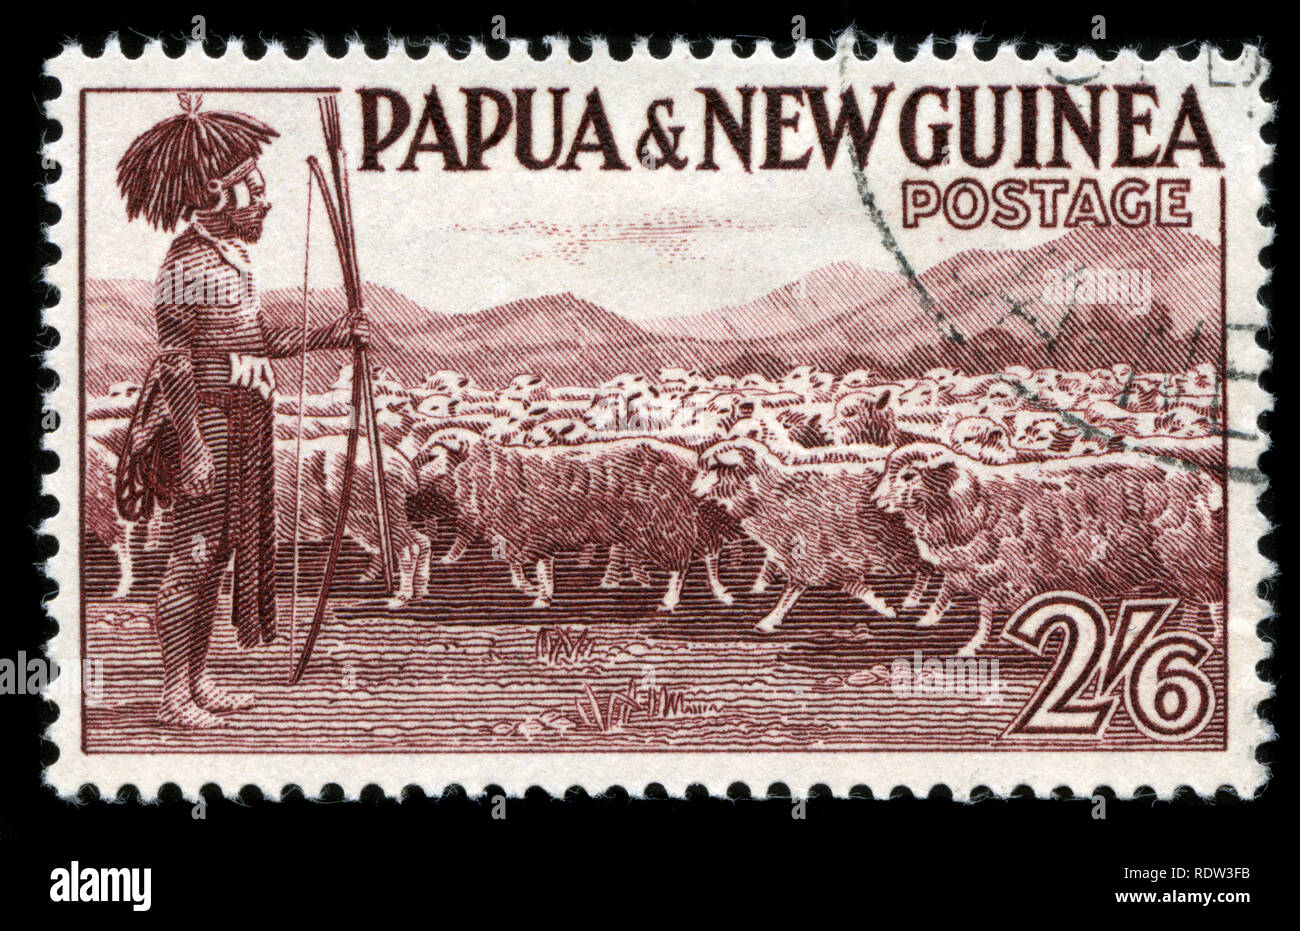 Postage Stamp From Papua New Guinea In The Pictorial